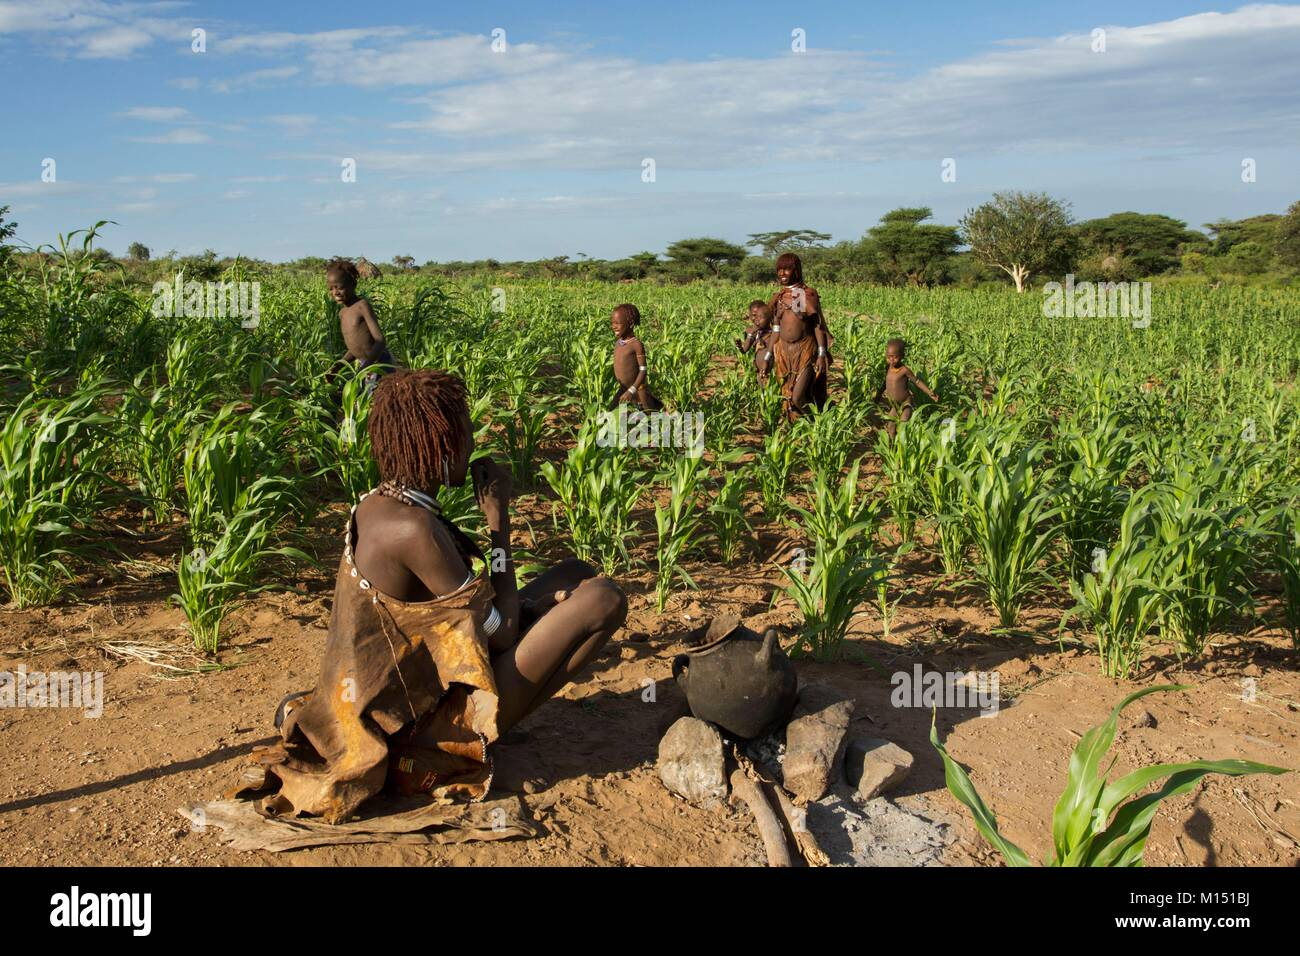 Ethiopia, Lower Omo Valley listed as World Heritage by UNESCO, Hamer tribe, Sorgo is the basis of food - Stock Image